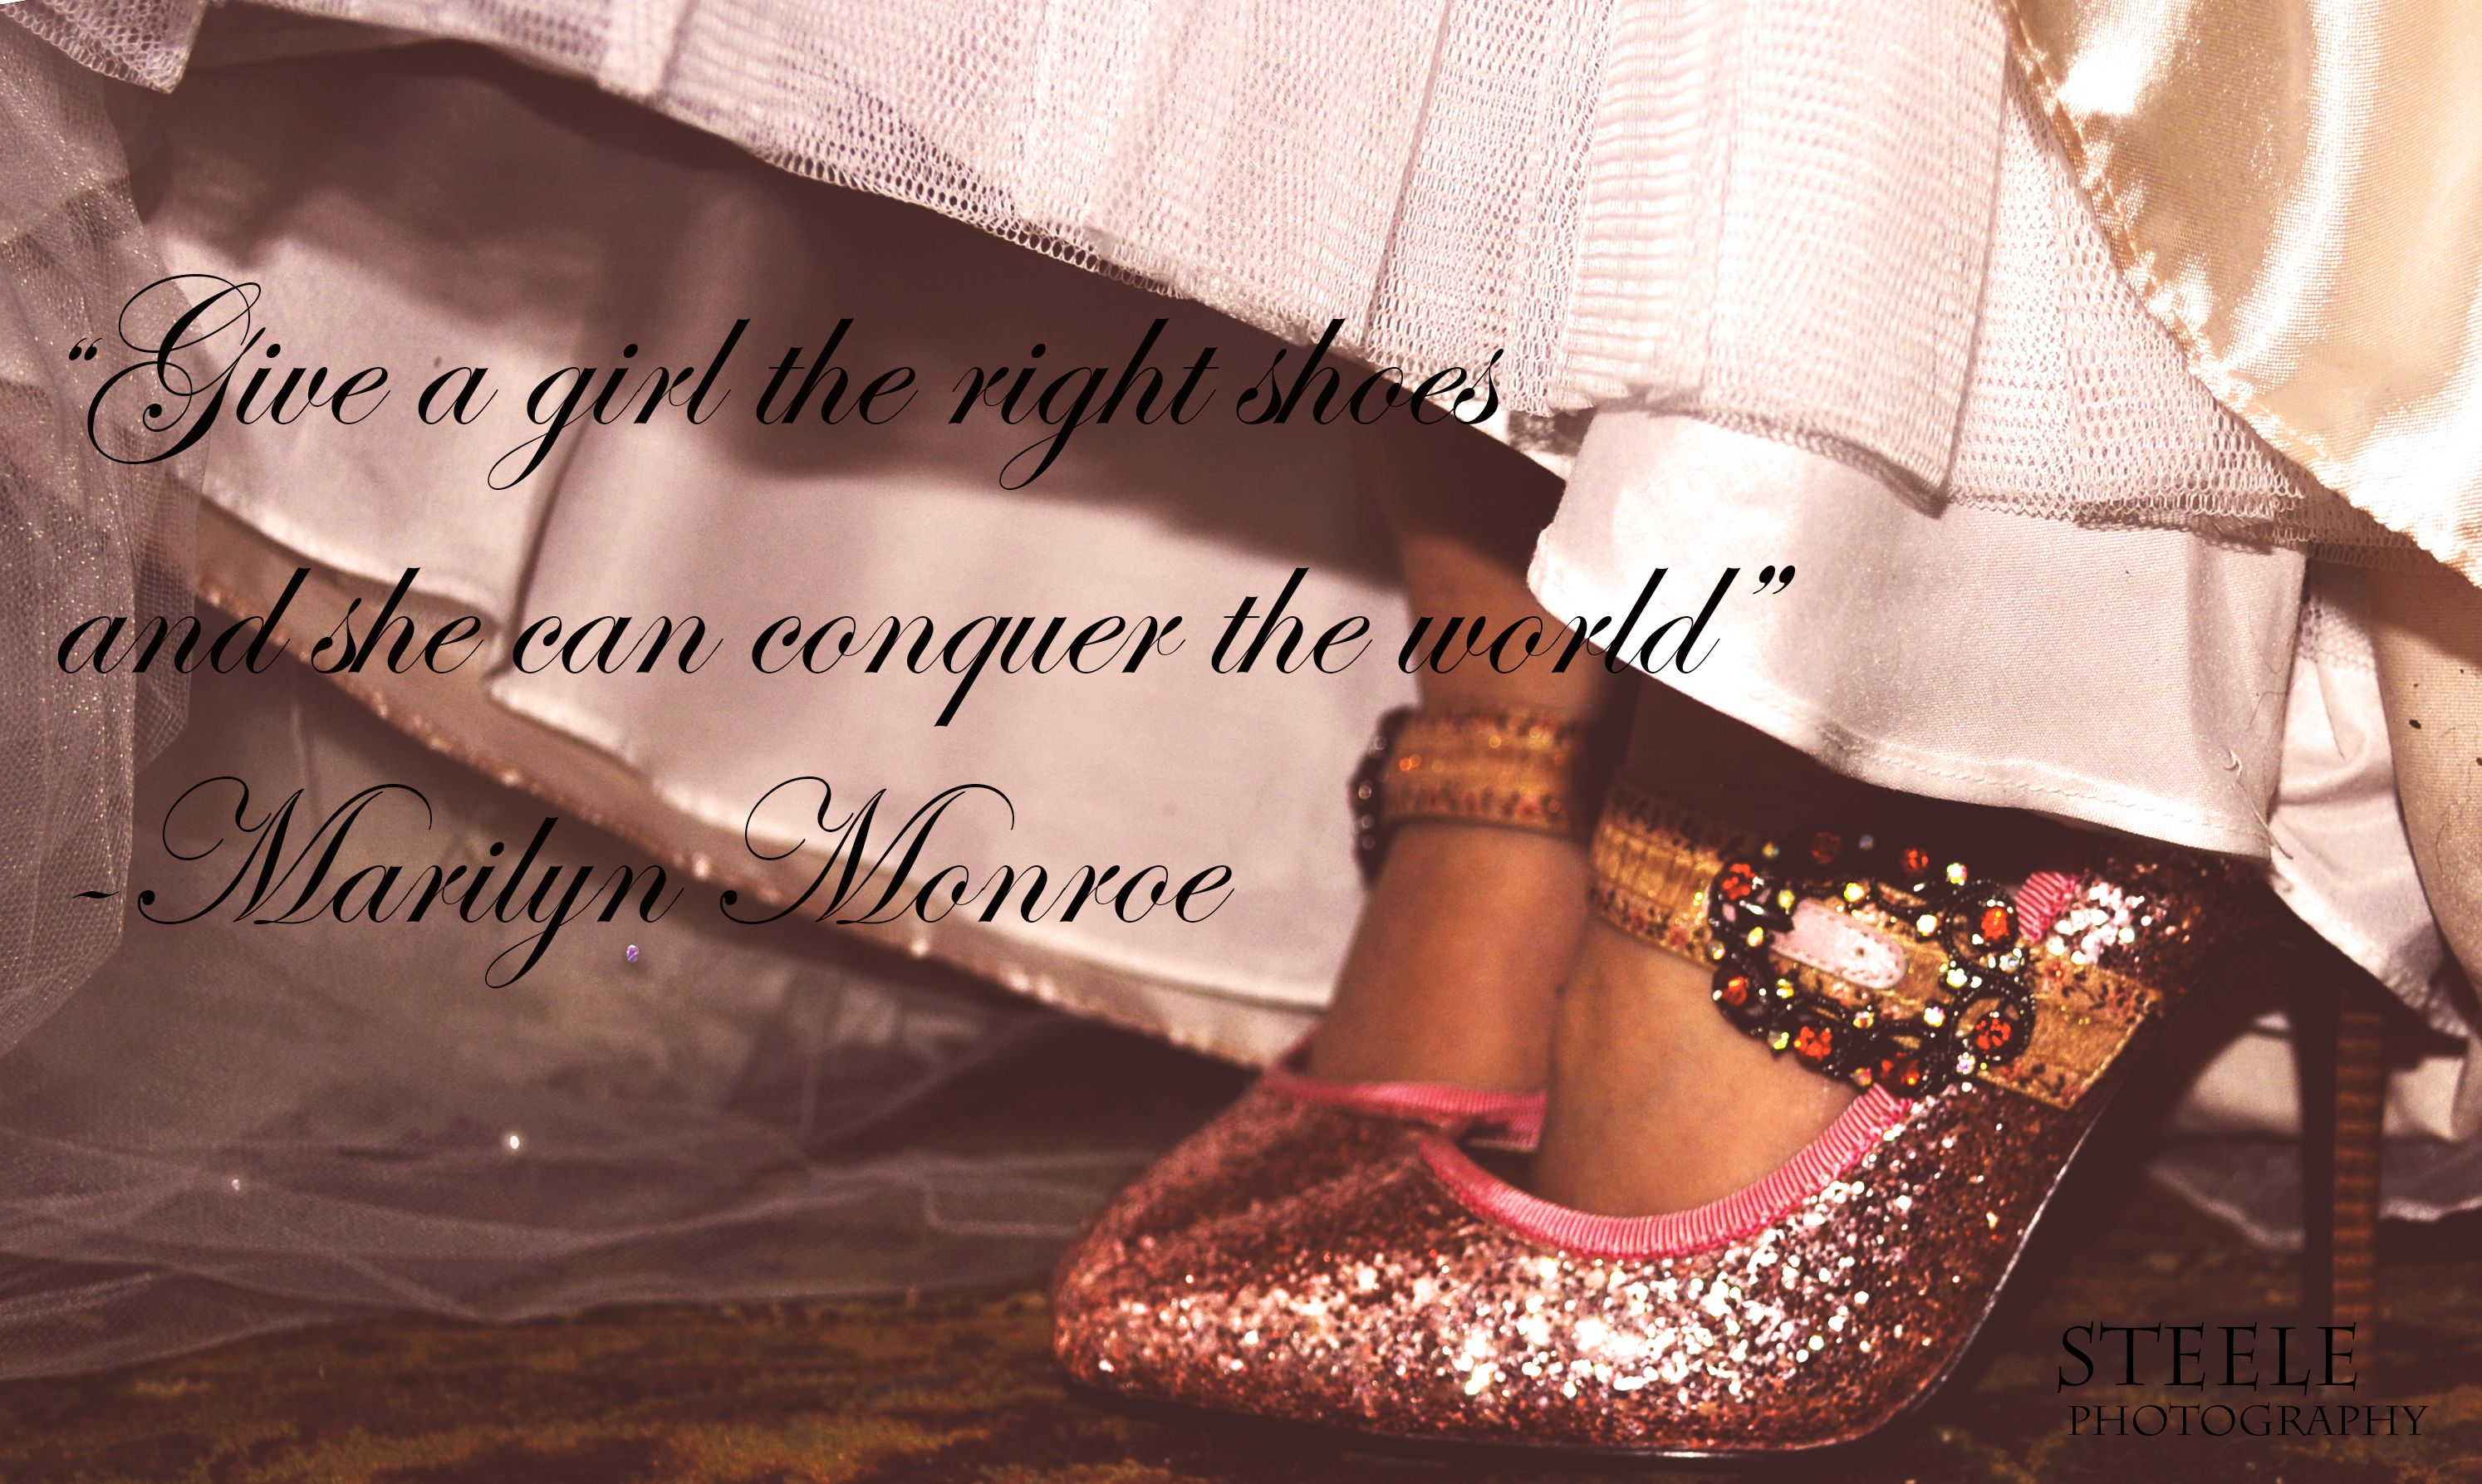 Pink Shoes, Quote, Shoes, Vintage, Glitter (With Images